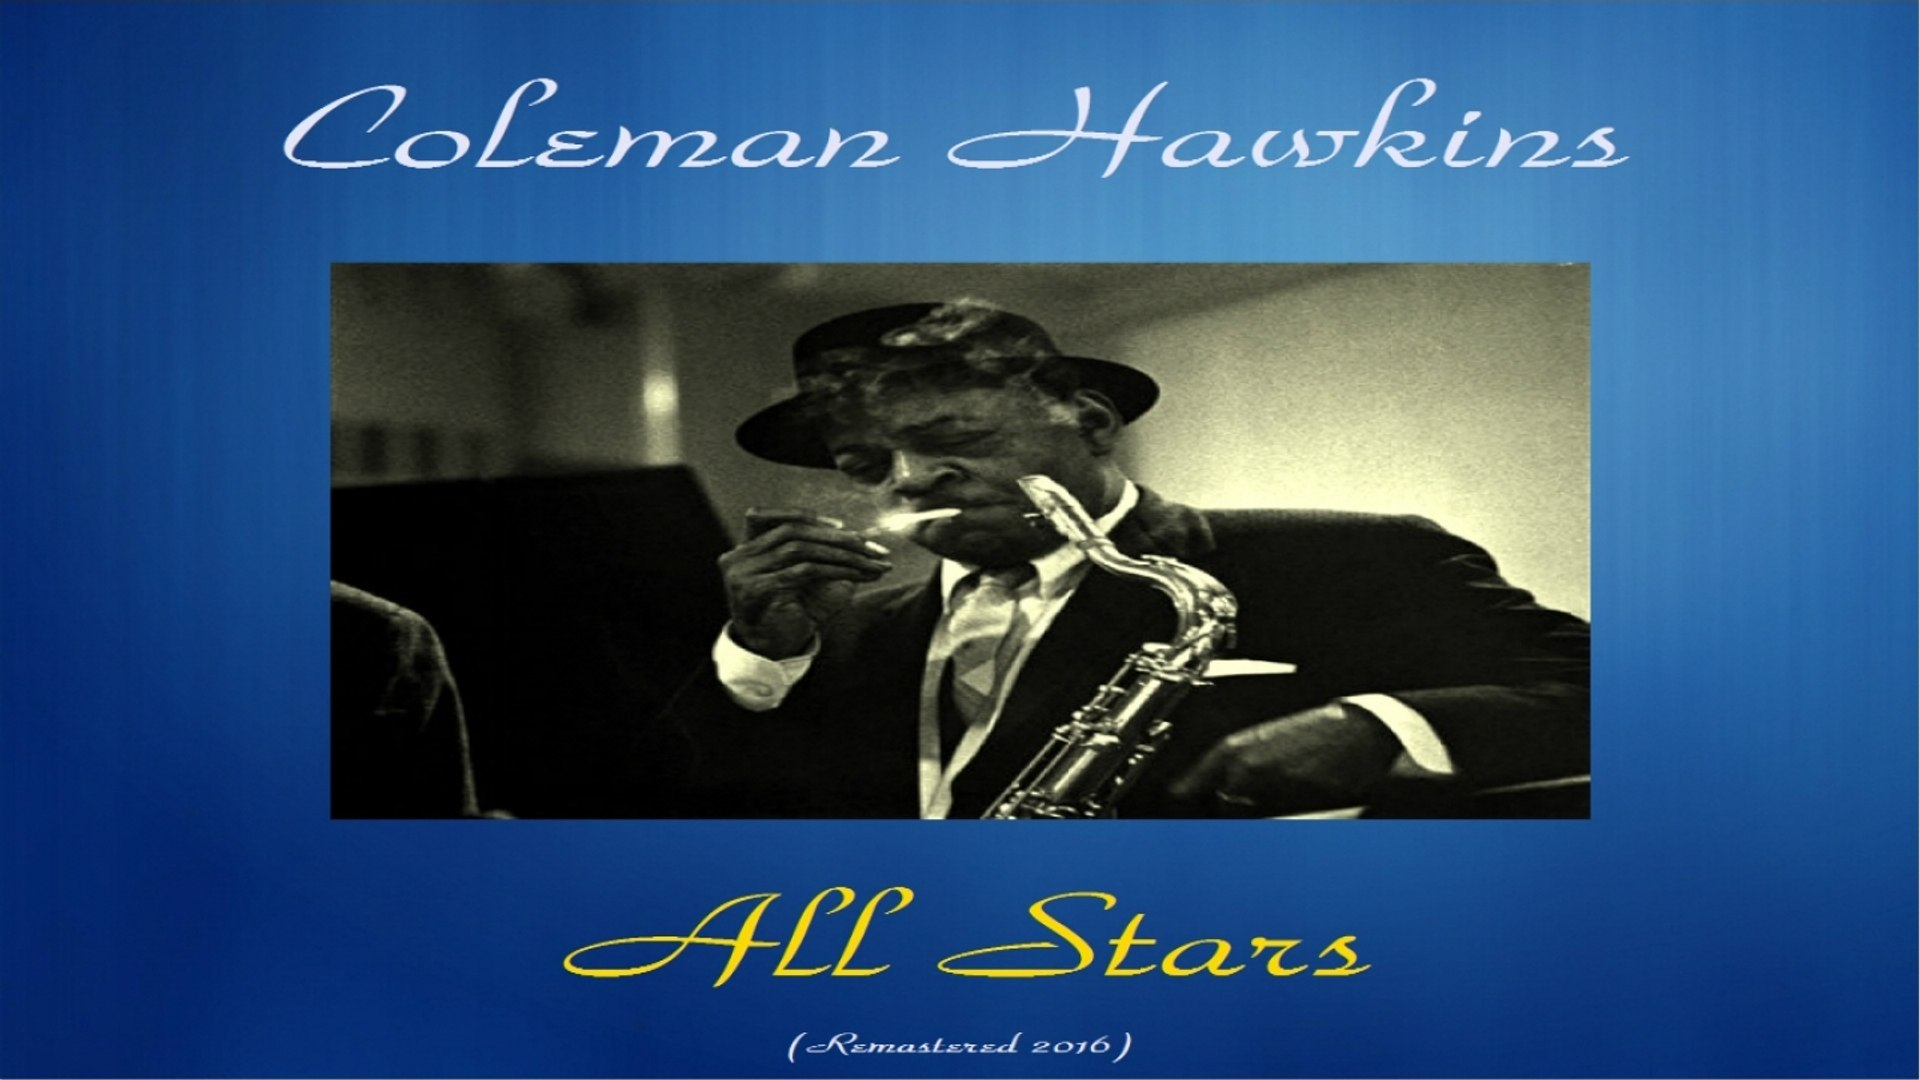 Coleman Hawkins - All Stars - Remastered 2016